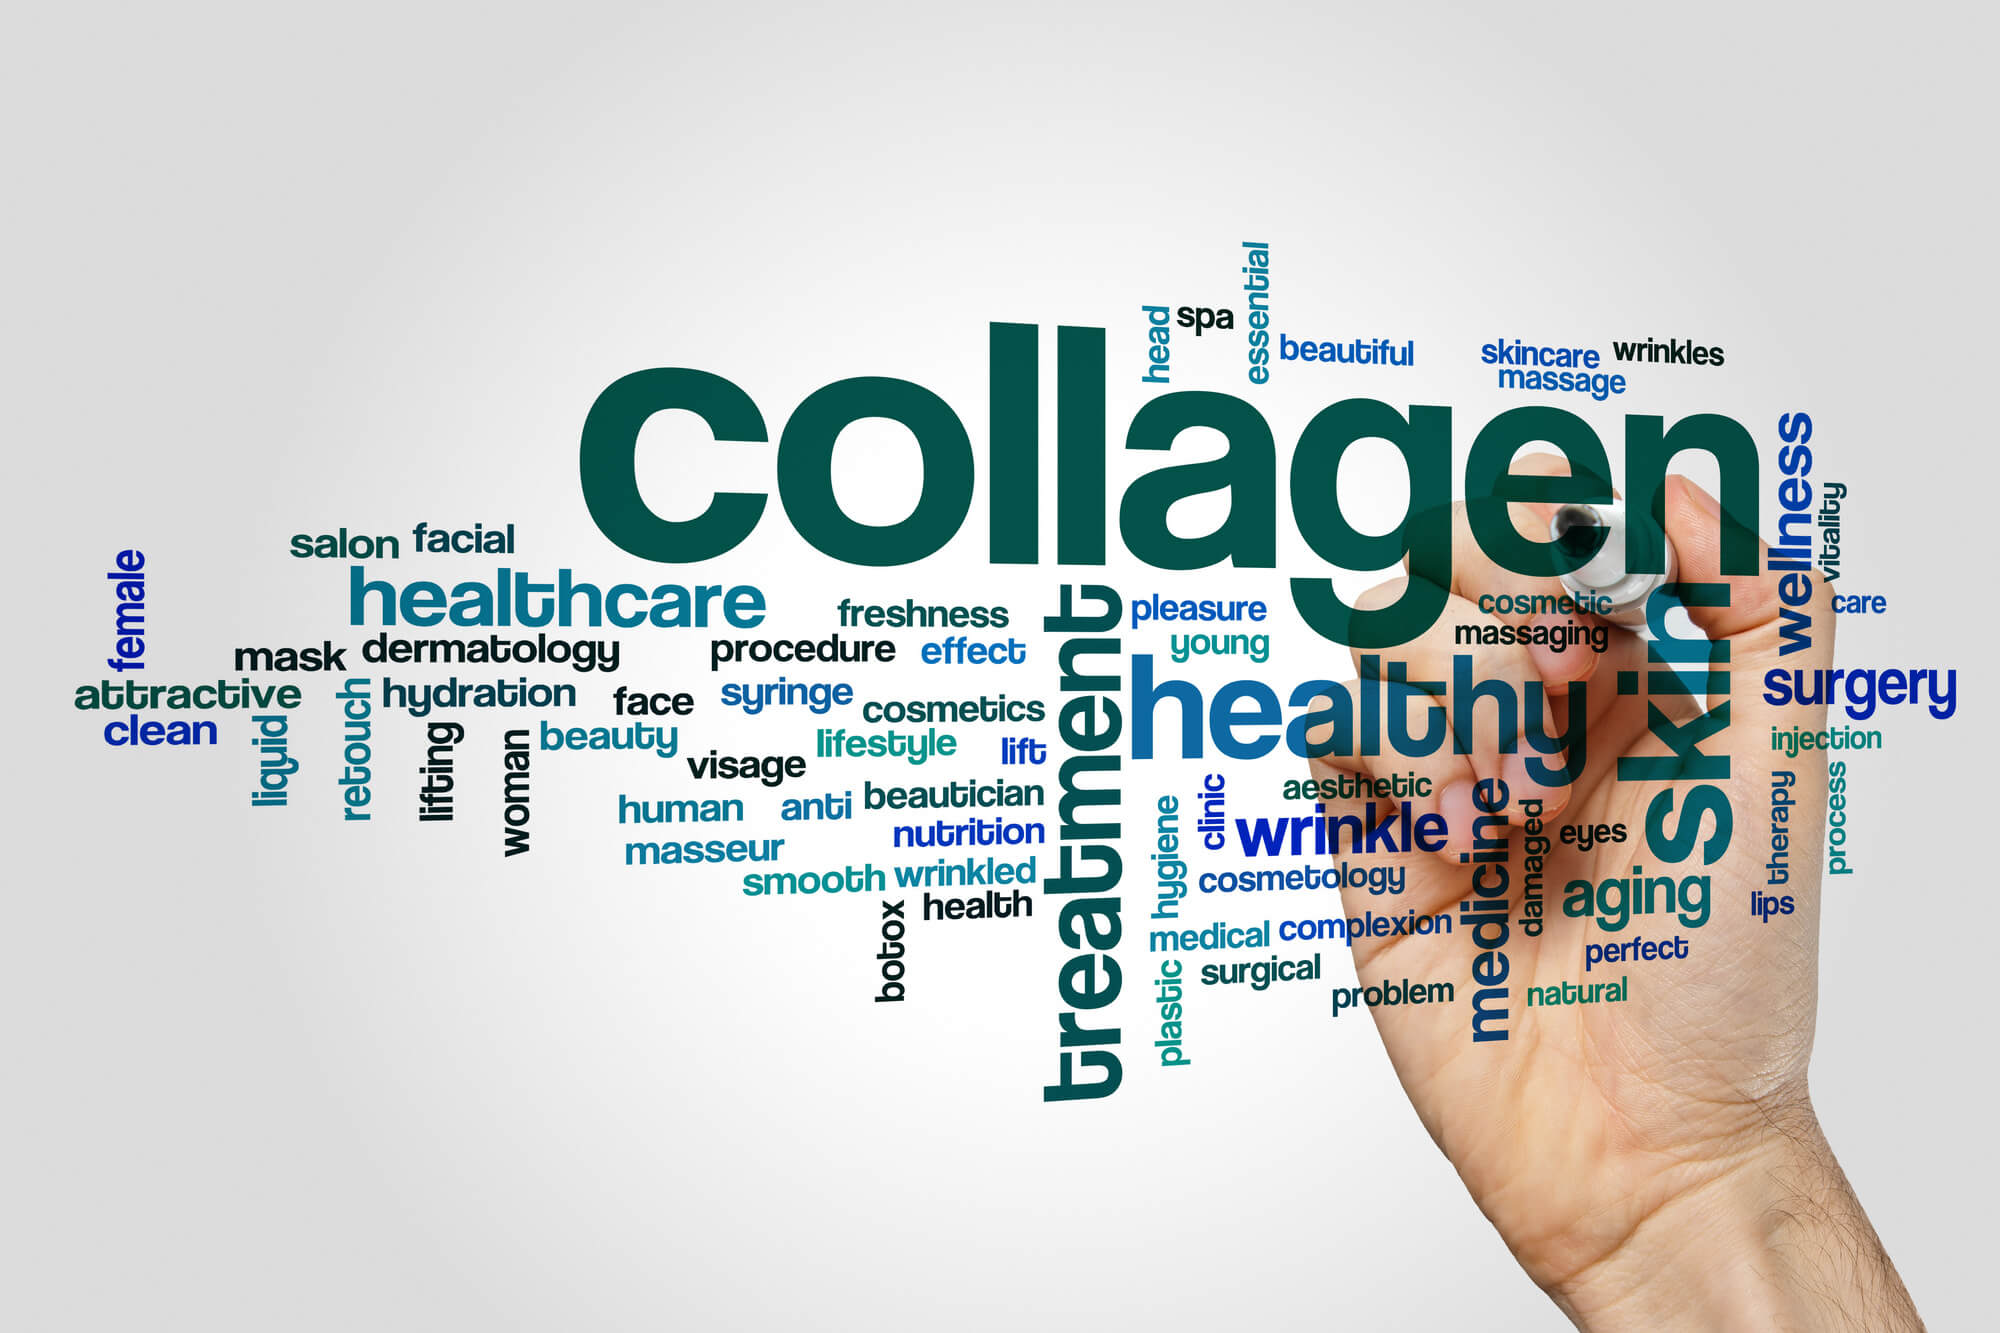 Collagen word cluster